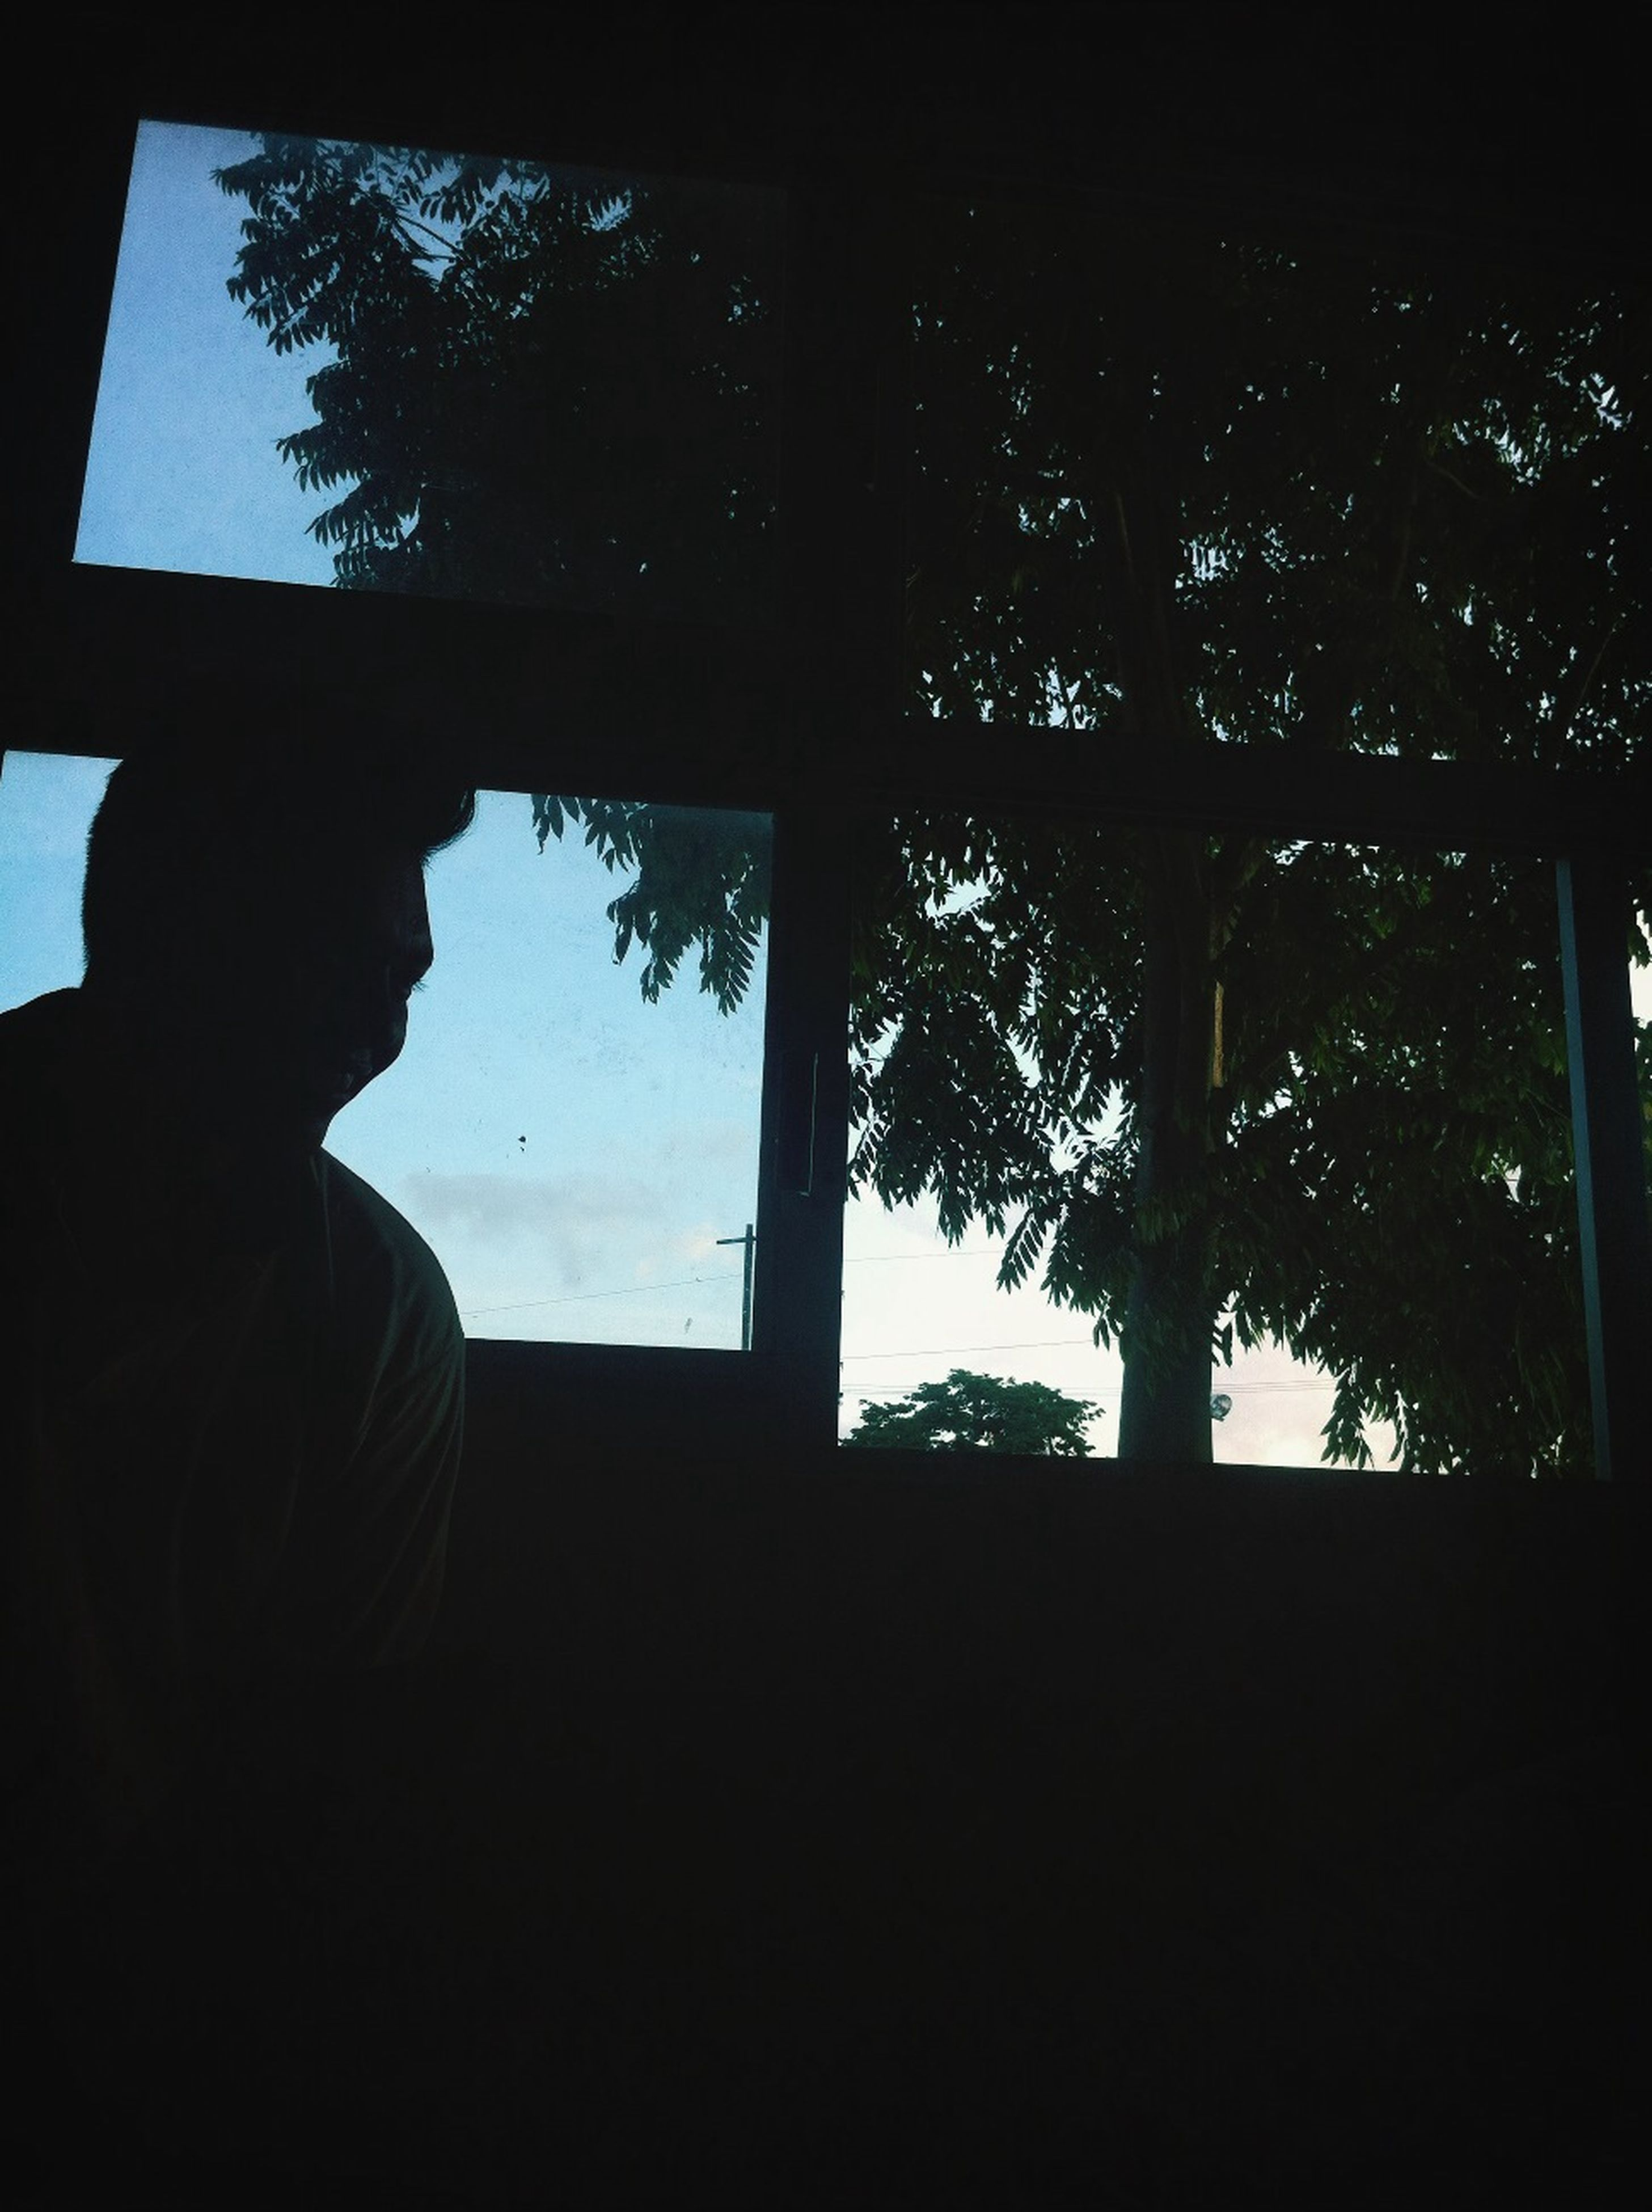 window, indoors, silhouette, tree, glass - material, water, lifestyles, transparent, looking through window, leisure activity, sky, men, sitting, day, sea, nature, standing, reflection